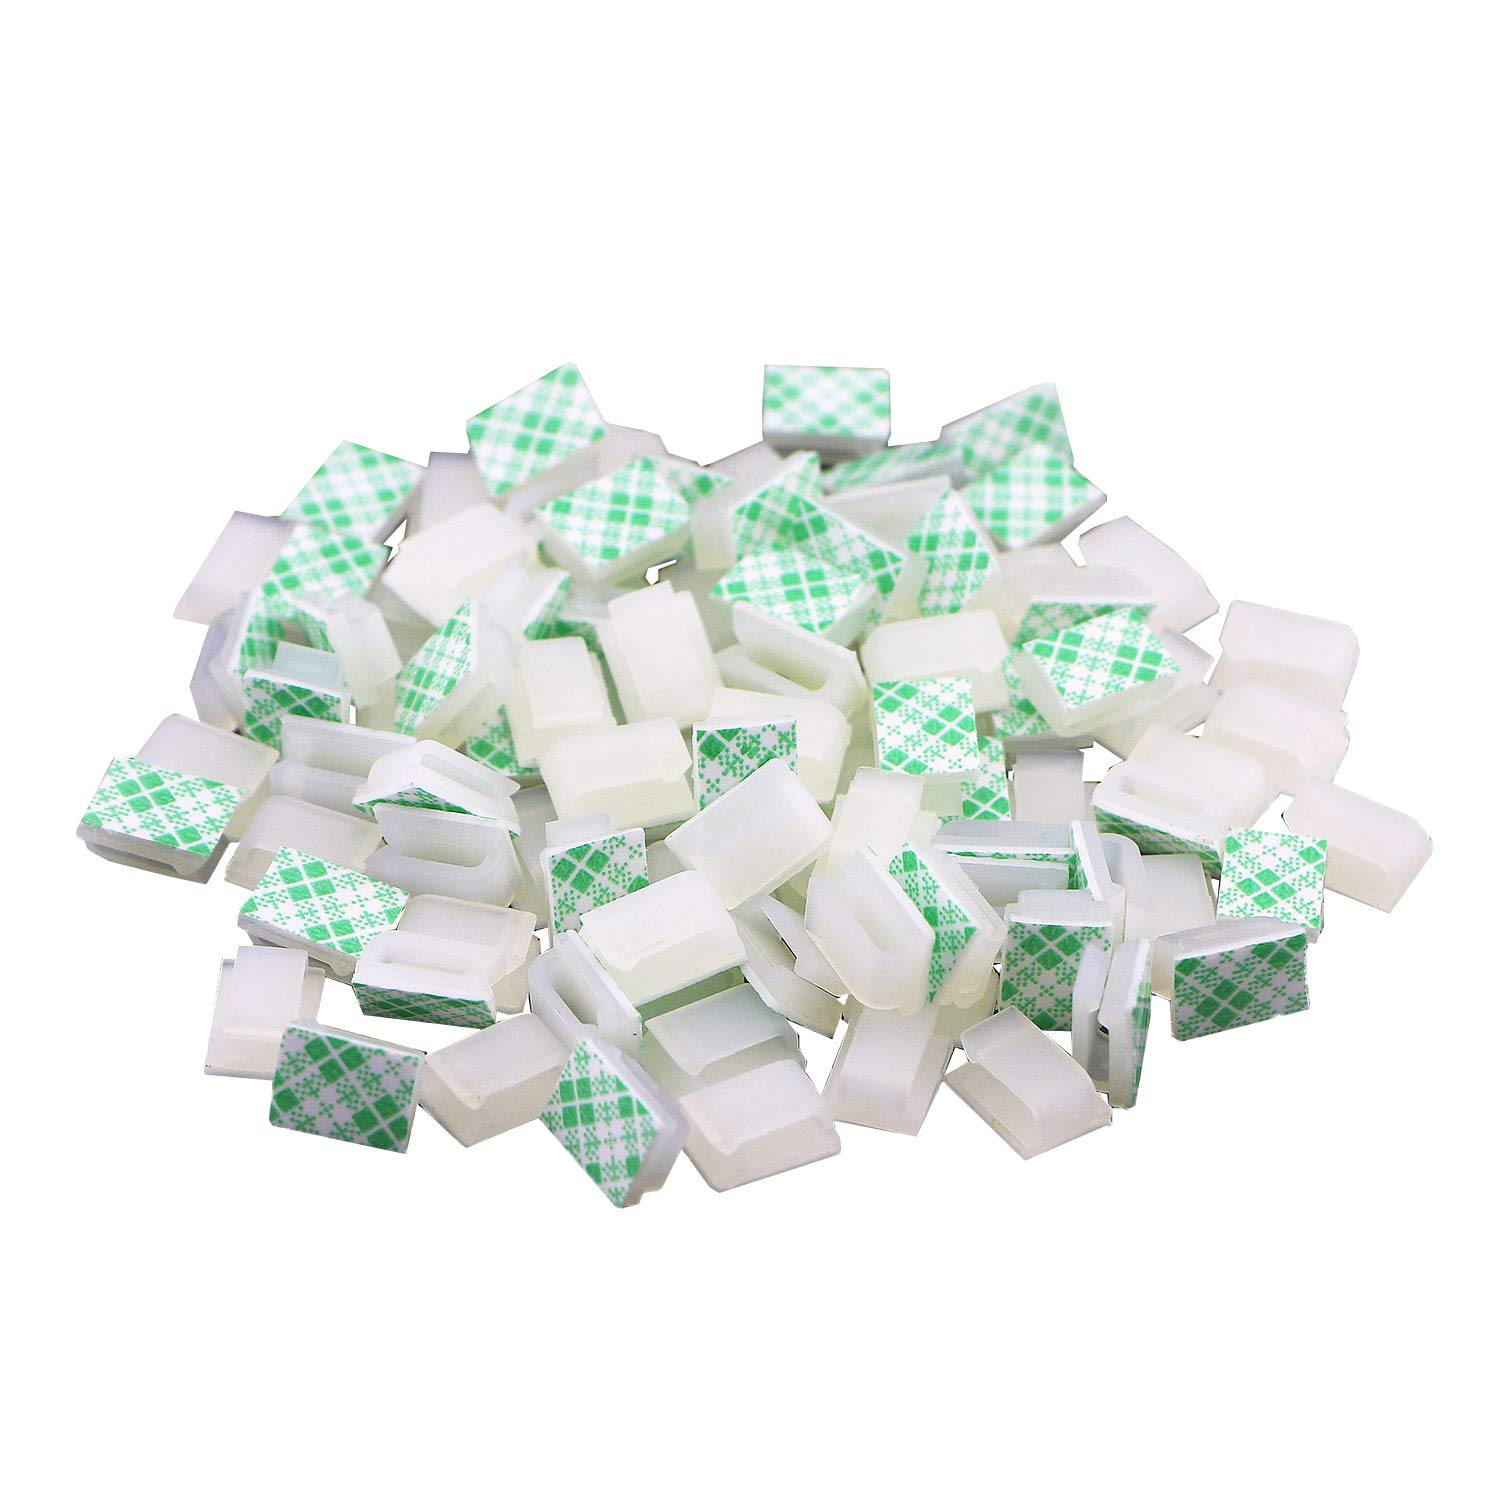 Pasow 100 PCS Self Adhesive Car Cable Tie Cable Clips Cable Drop Wire Holder Organizer 139.25.6 MM White